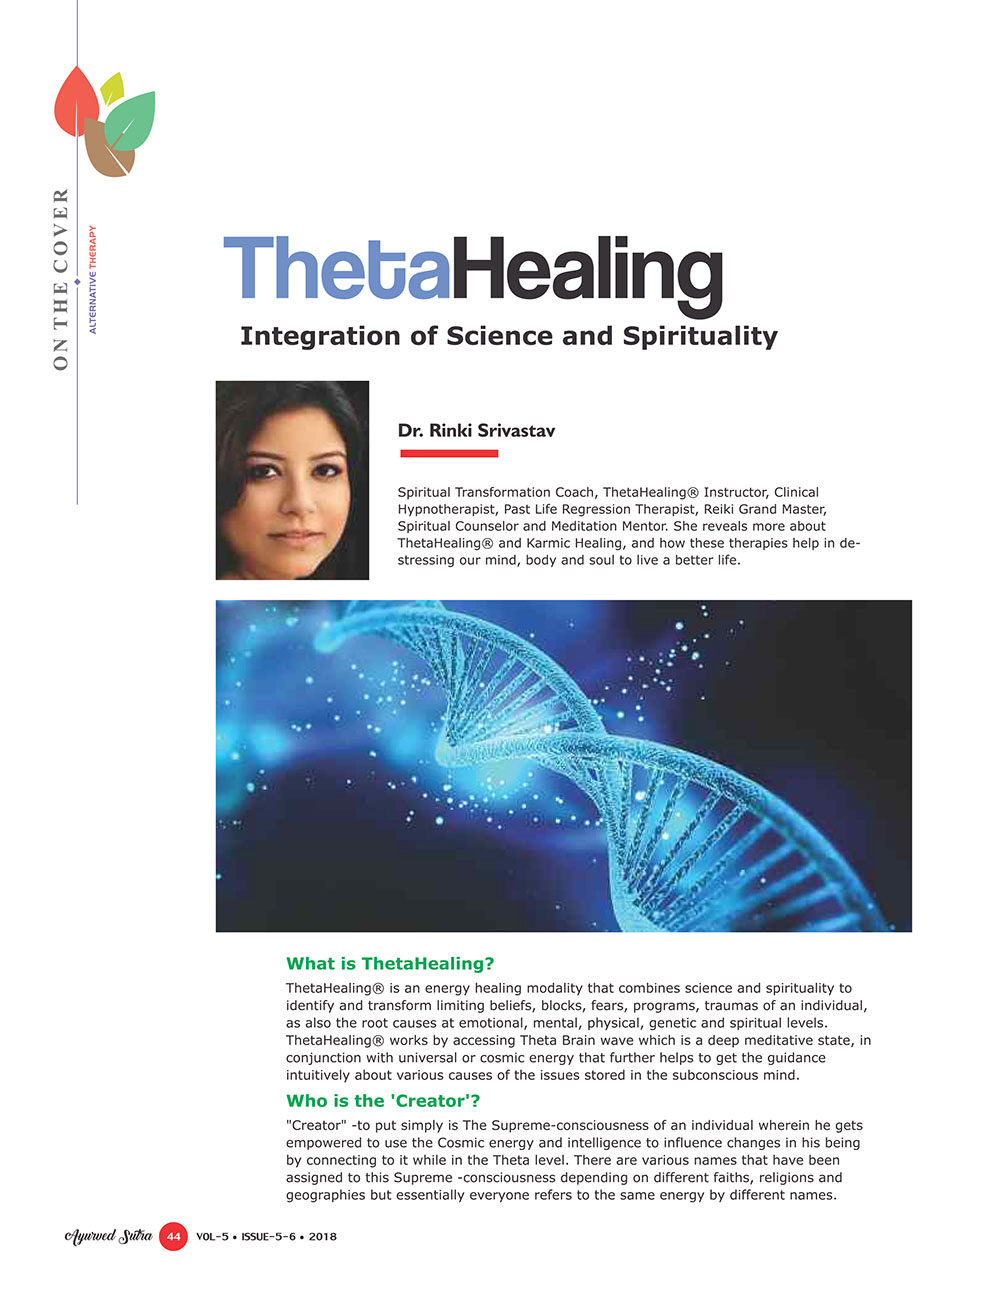 Ayurvedsutra Vol 05 issue 05 06 46 - ThetaHealing®: Integration of Science and Spirituality